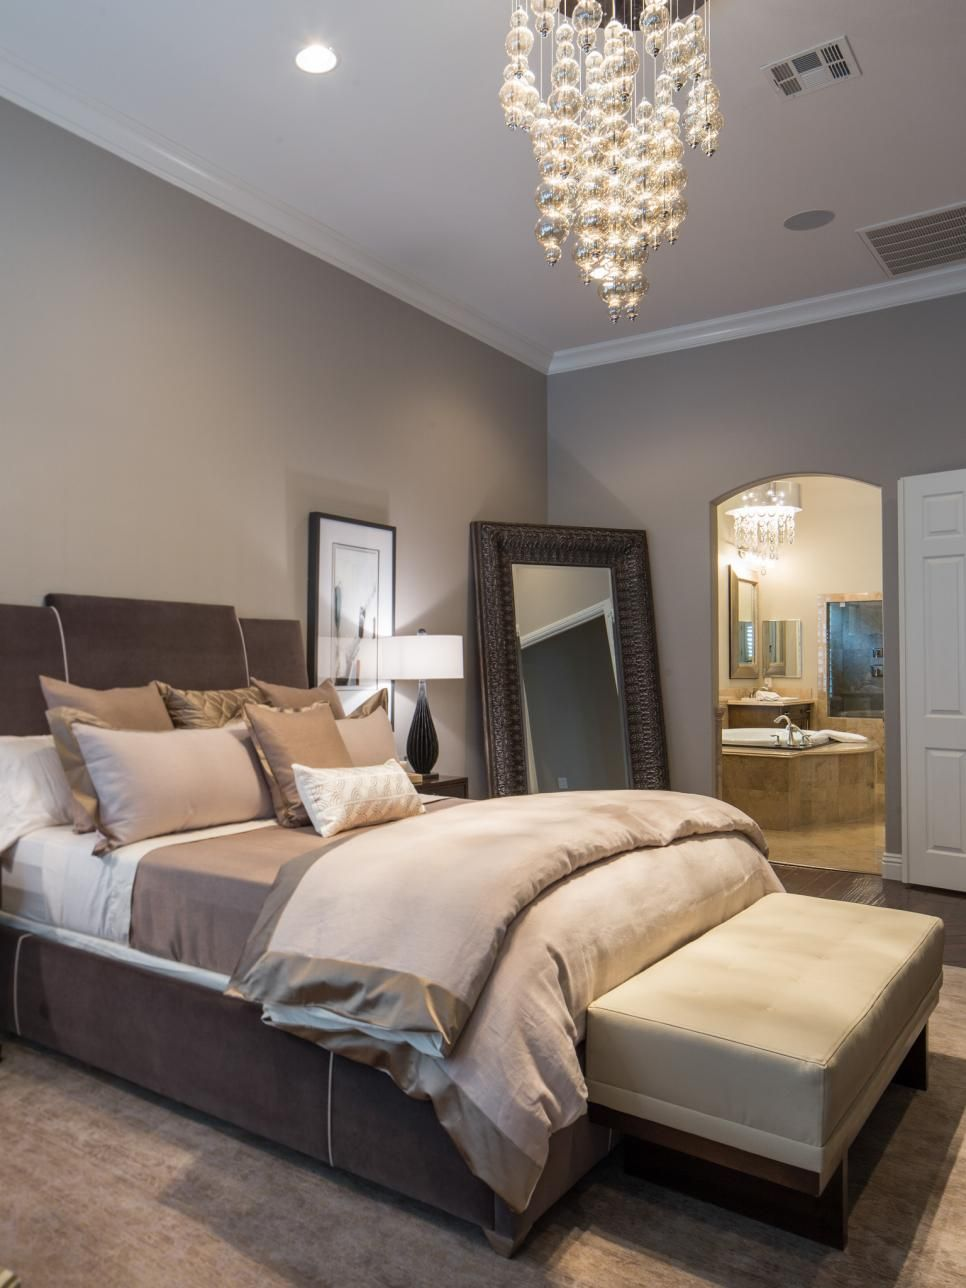 Most Popular Photos on Pinterest from Modern bedroom